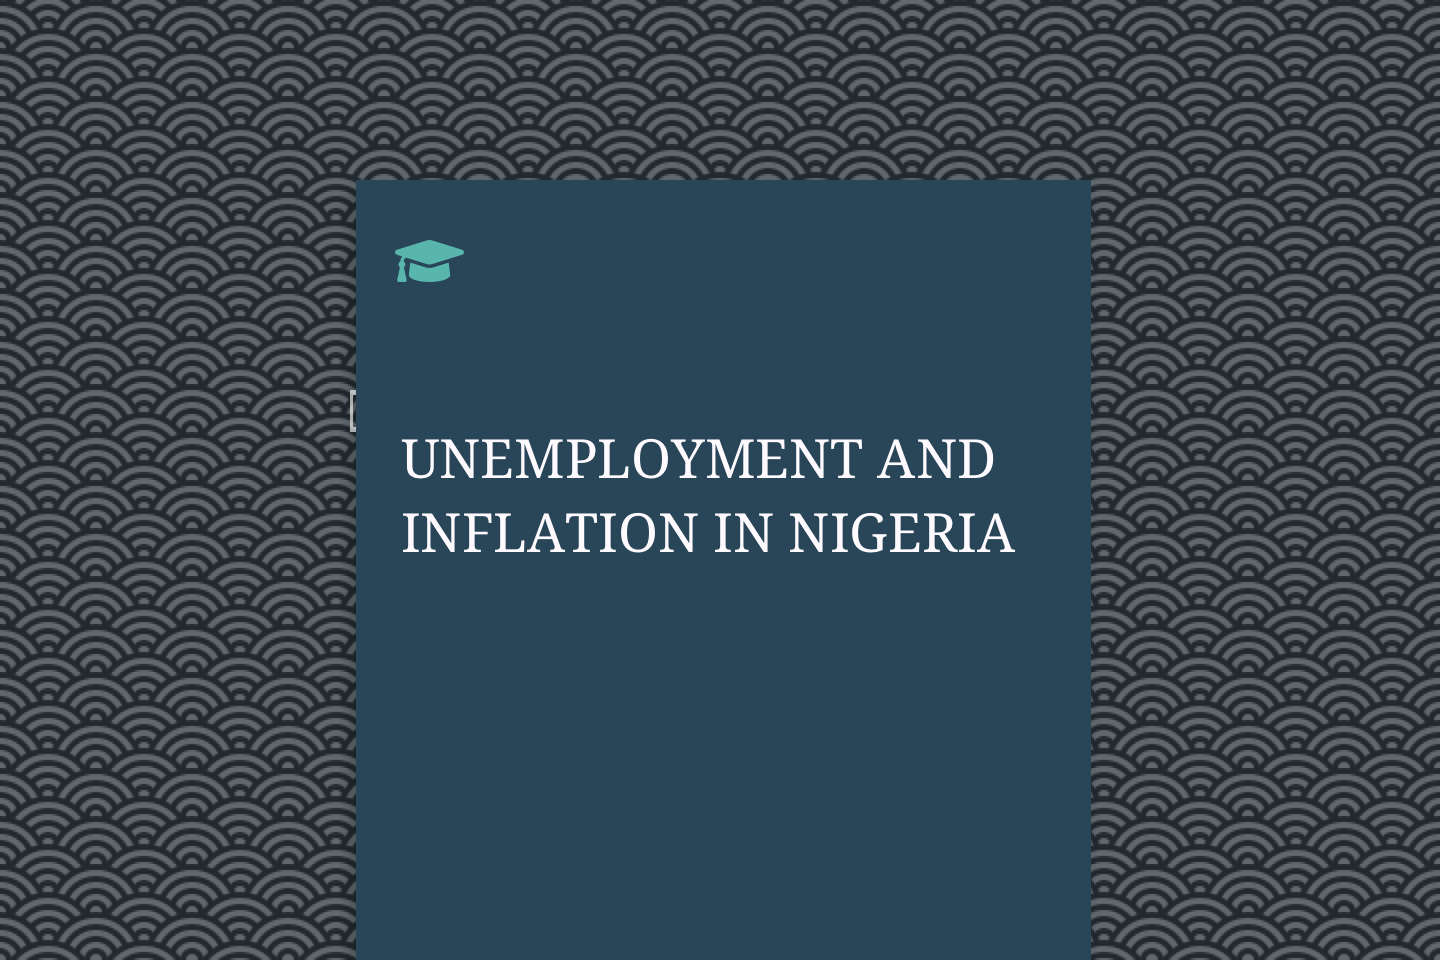 UNEMPLOYMENT AND INFLATION IN NIGERIA